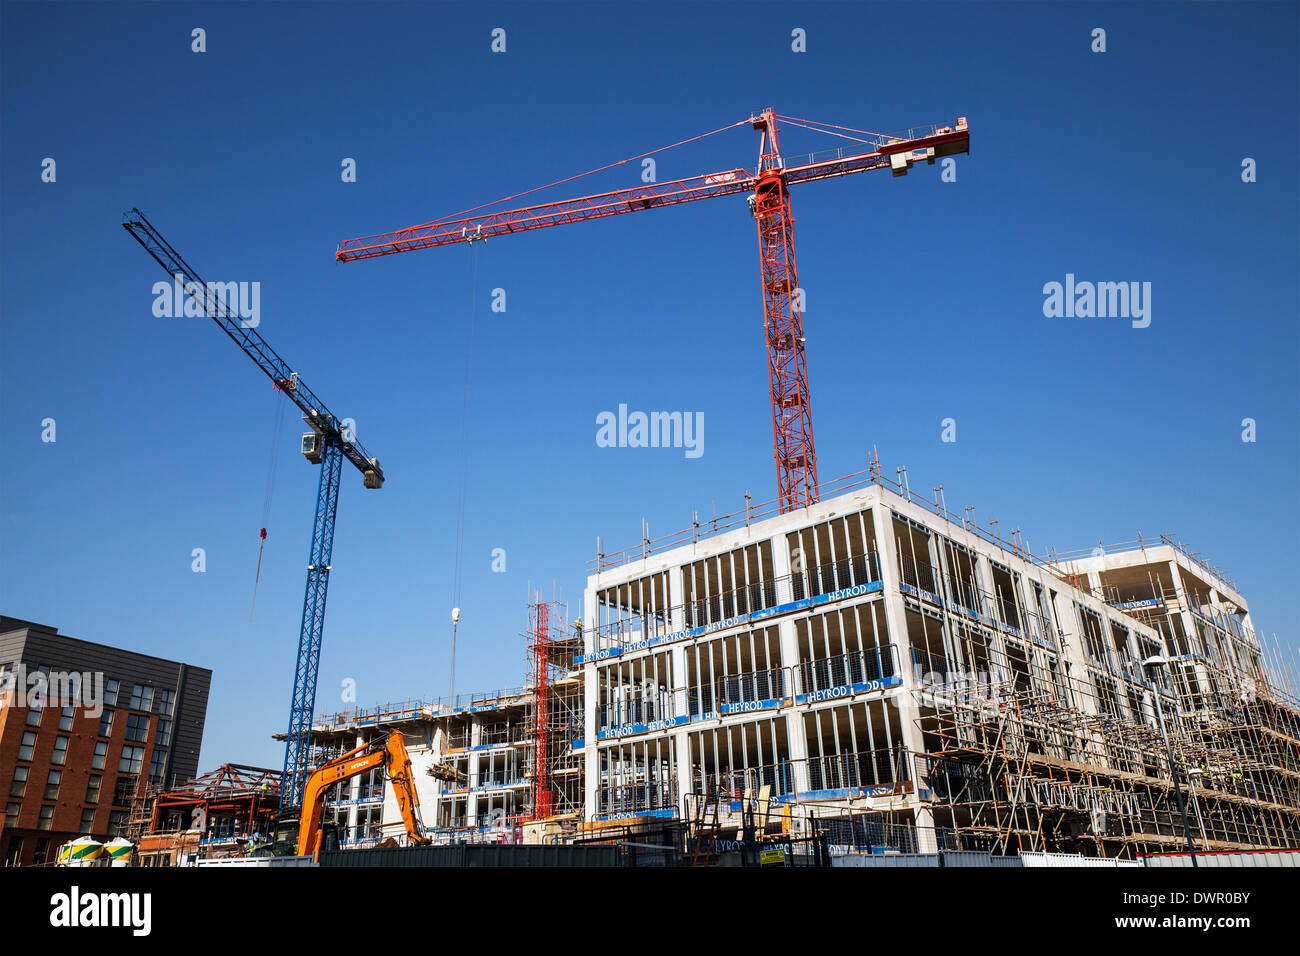 Manchester, UK 12th March, 2014.   City new build construction boom. HTC Cranes being used in building assembly - Stock Image